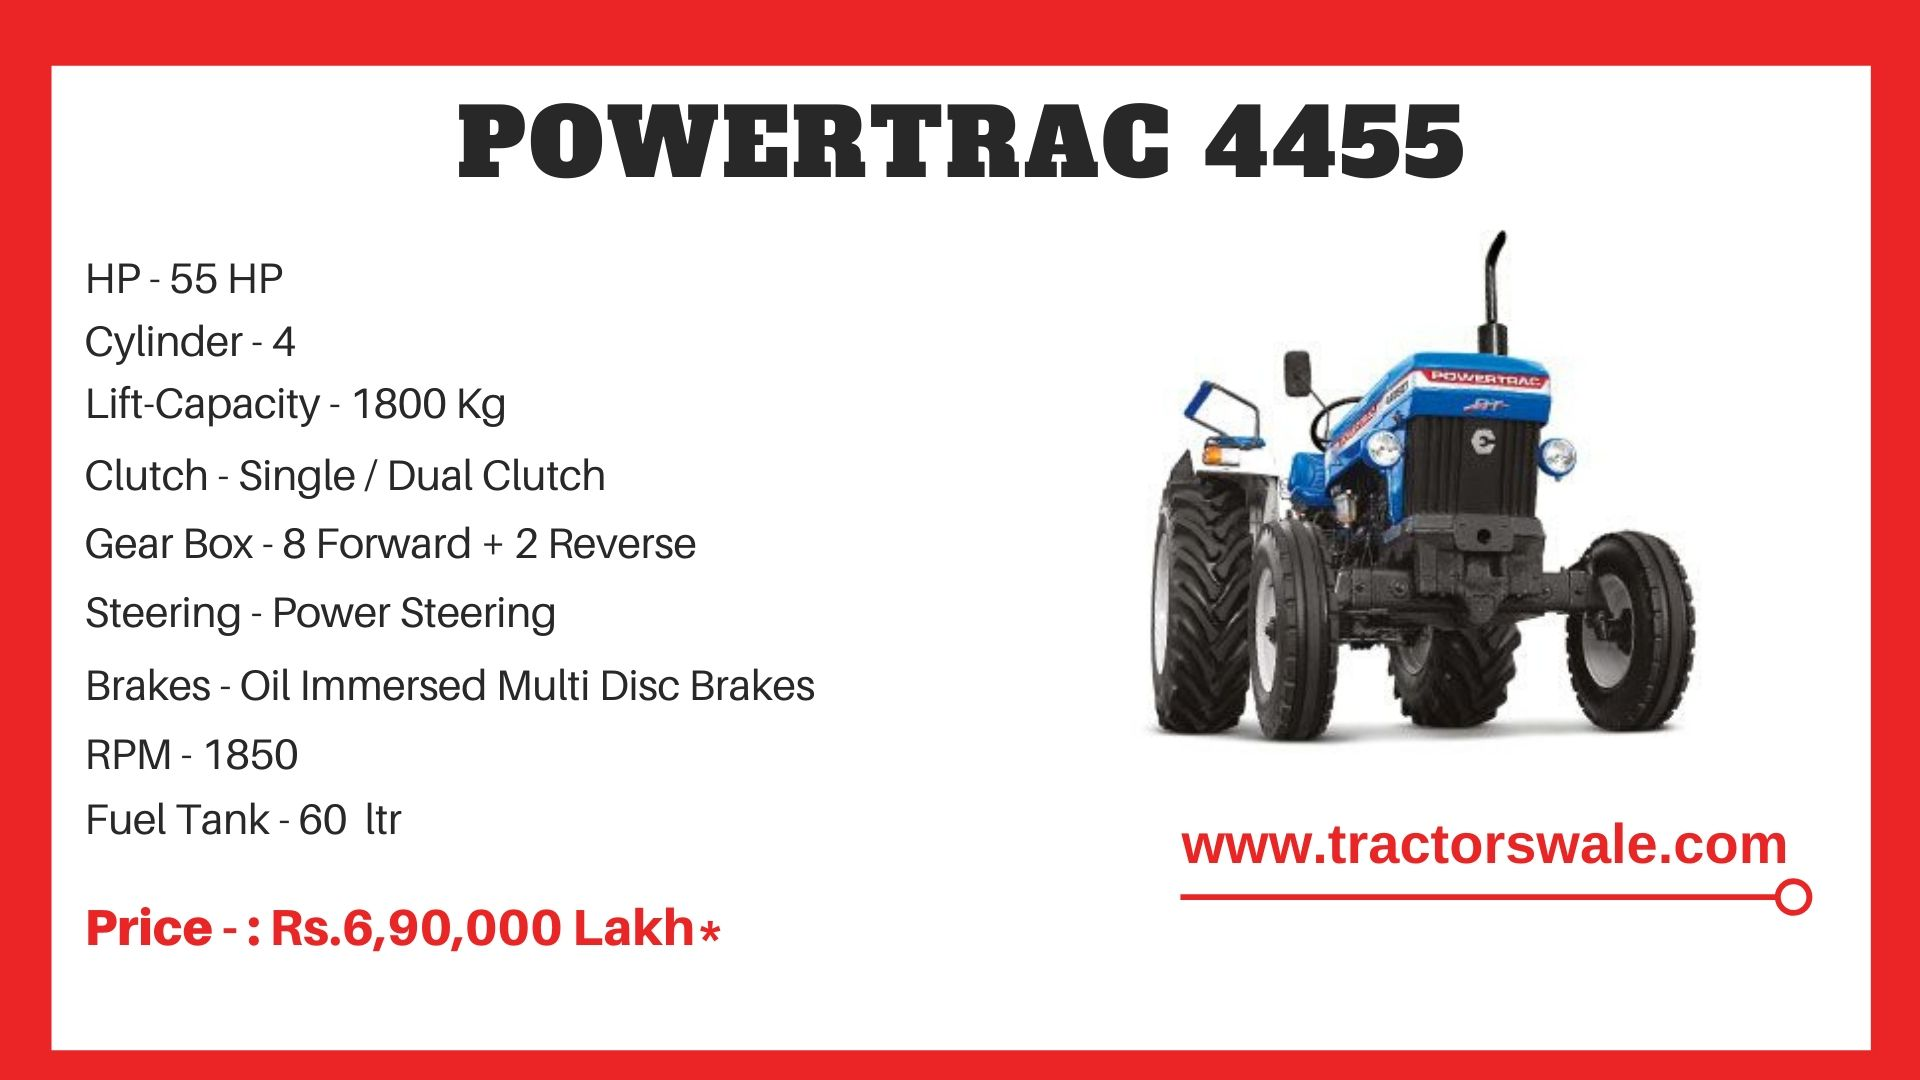 PowerTrac 4455 tractor price